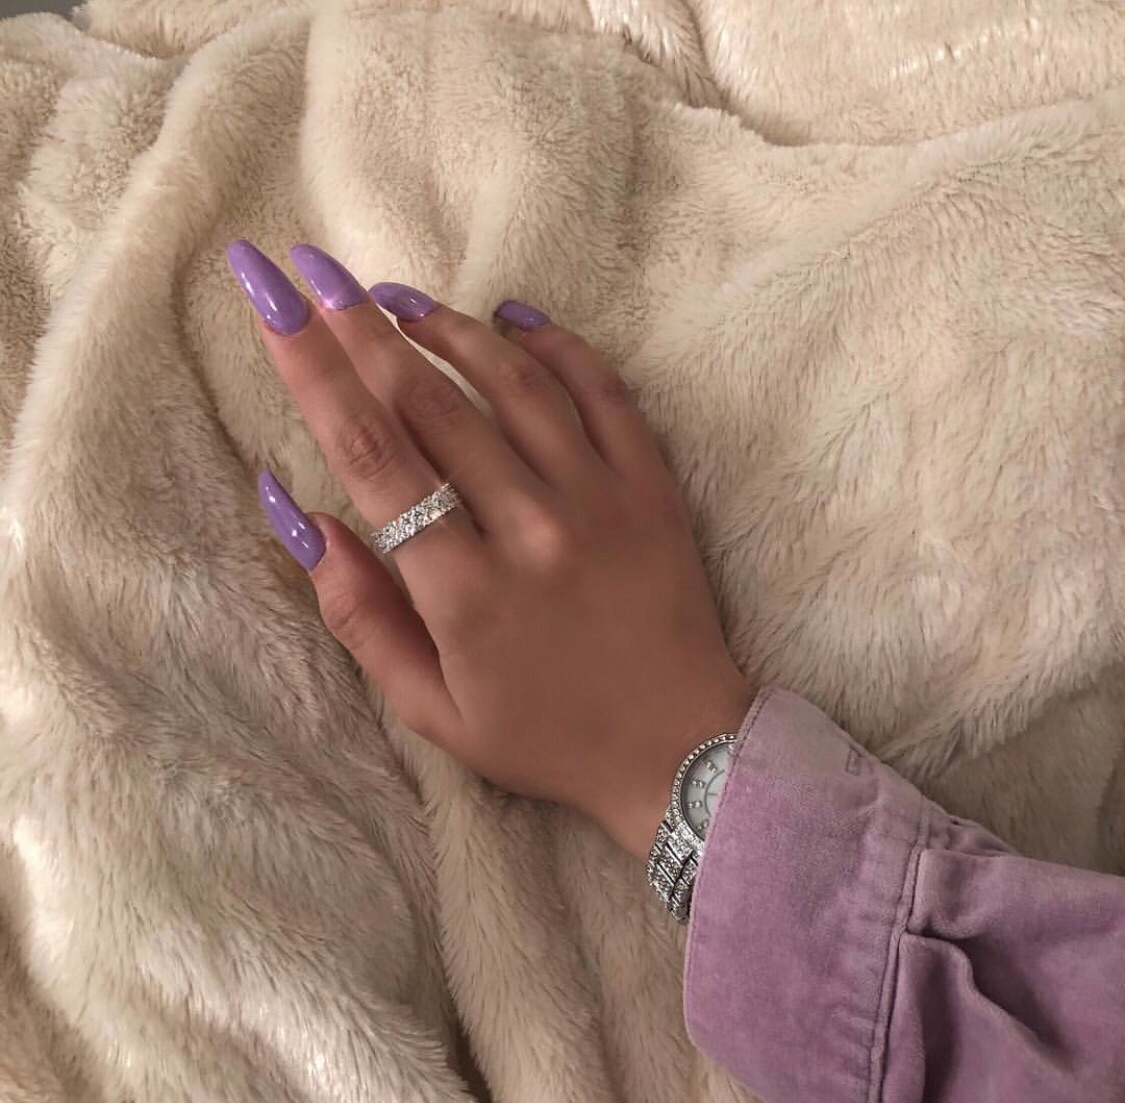 claws inspo, stylé, girly inspiration and nails purple